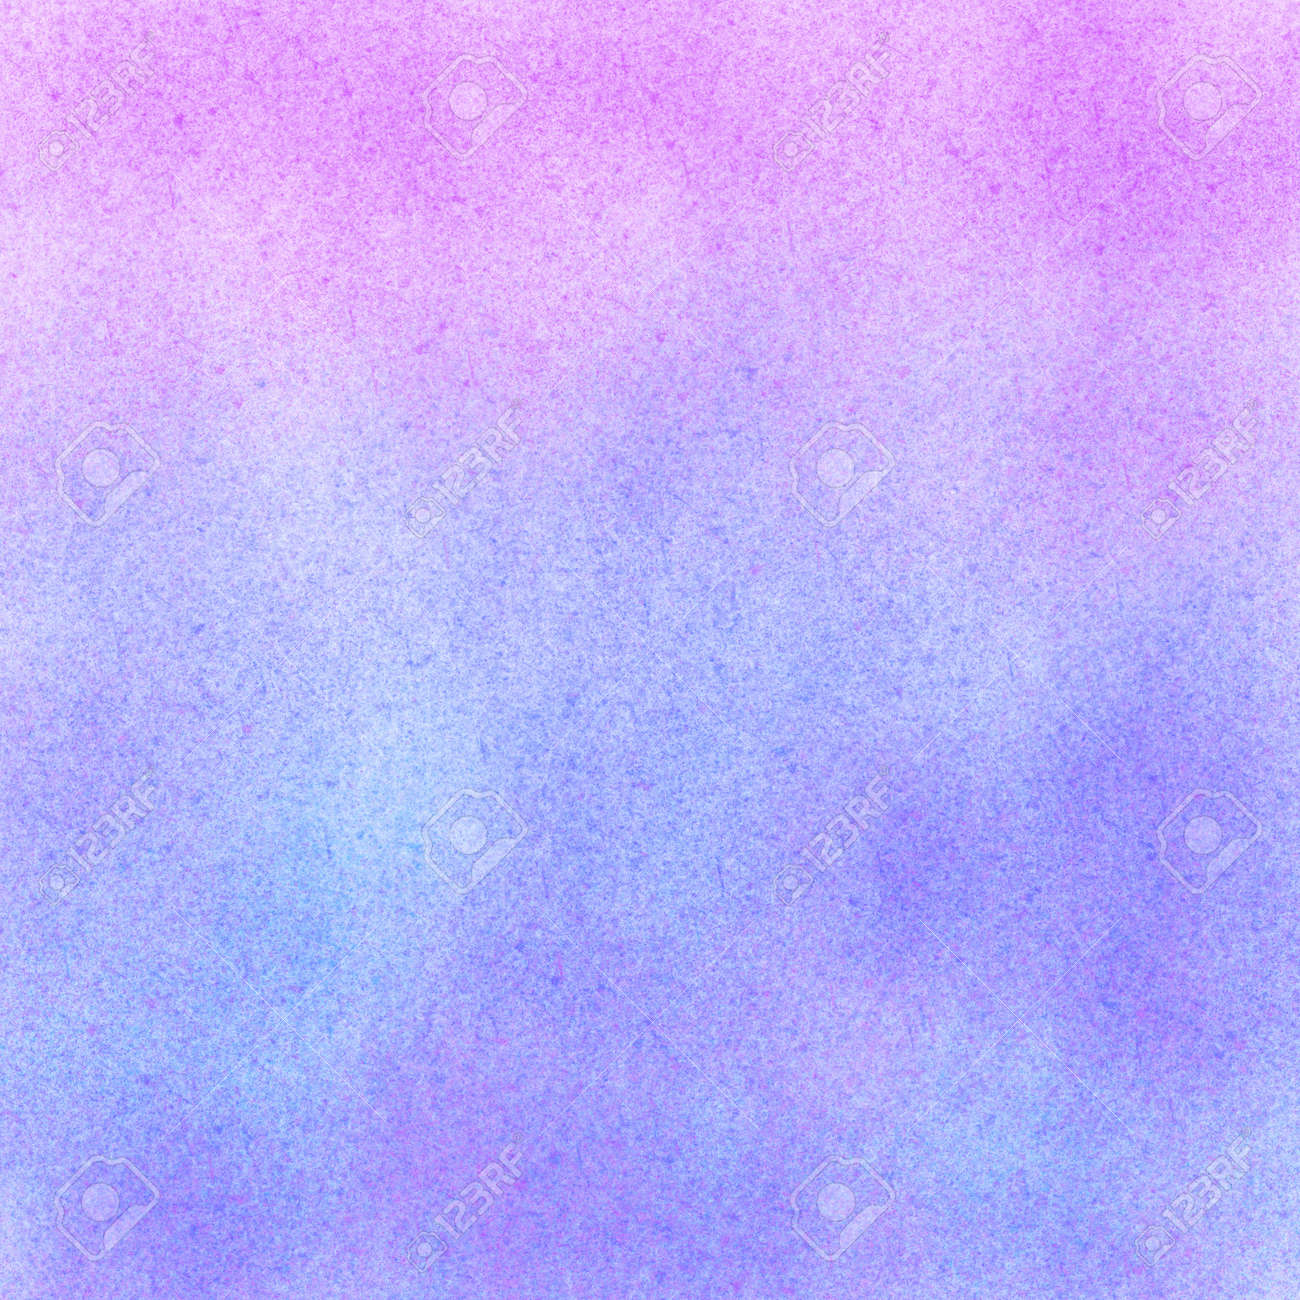 purple and pink speckle texture Abstract grunge background with distressed aged texture and brush stroked painting - 139261814